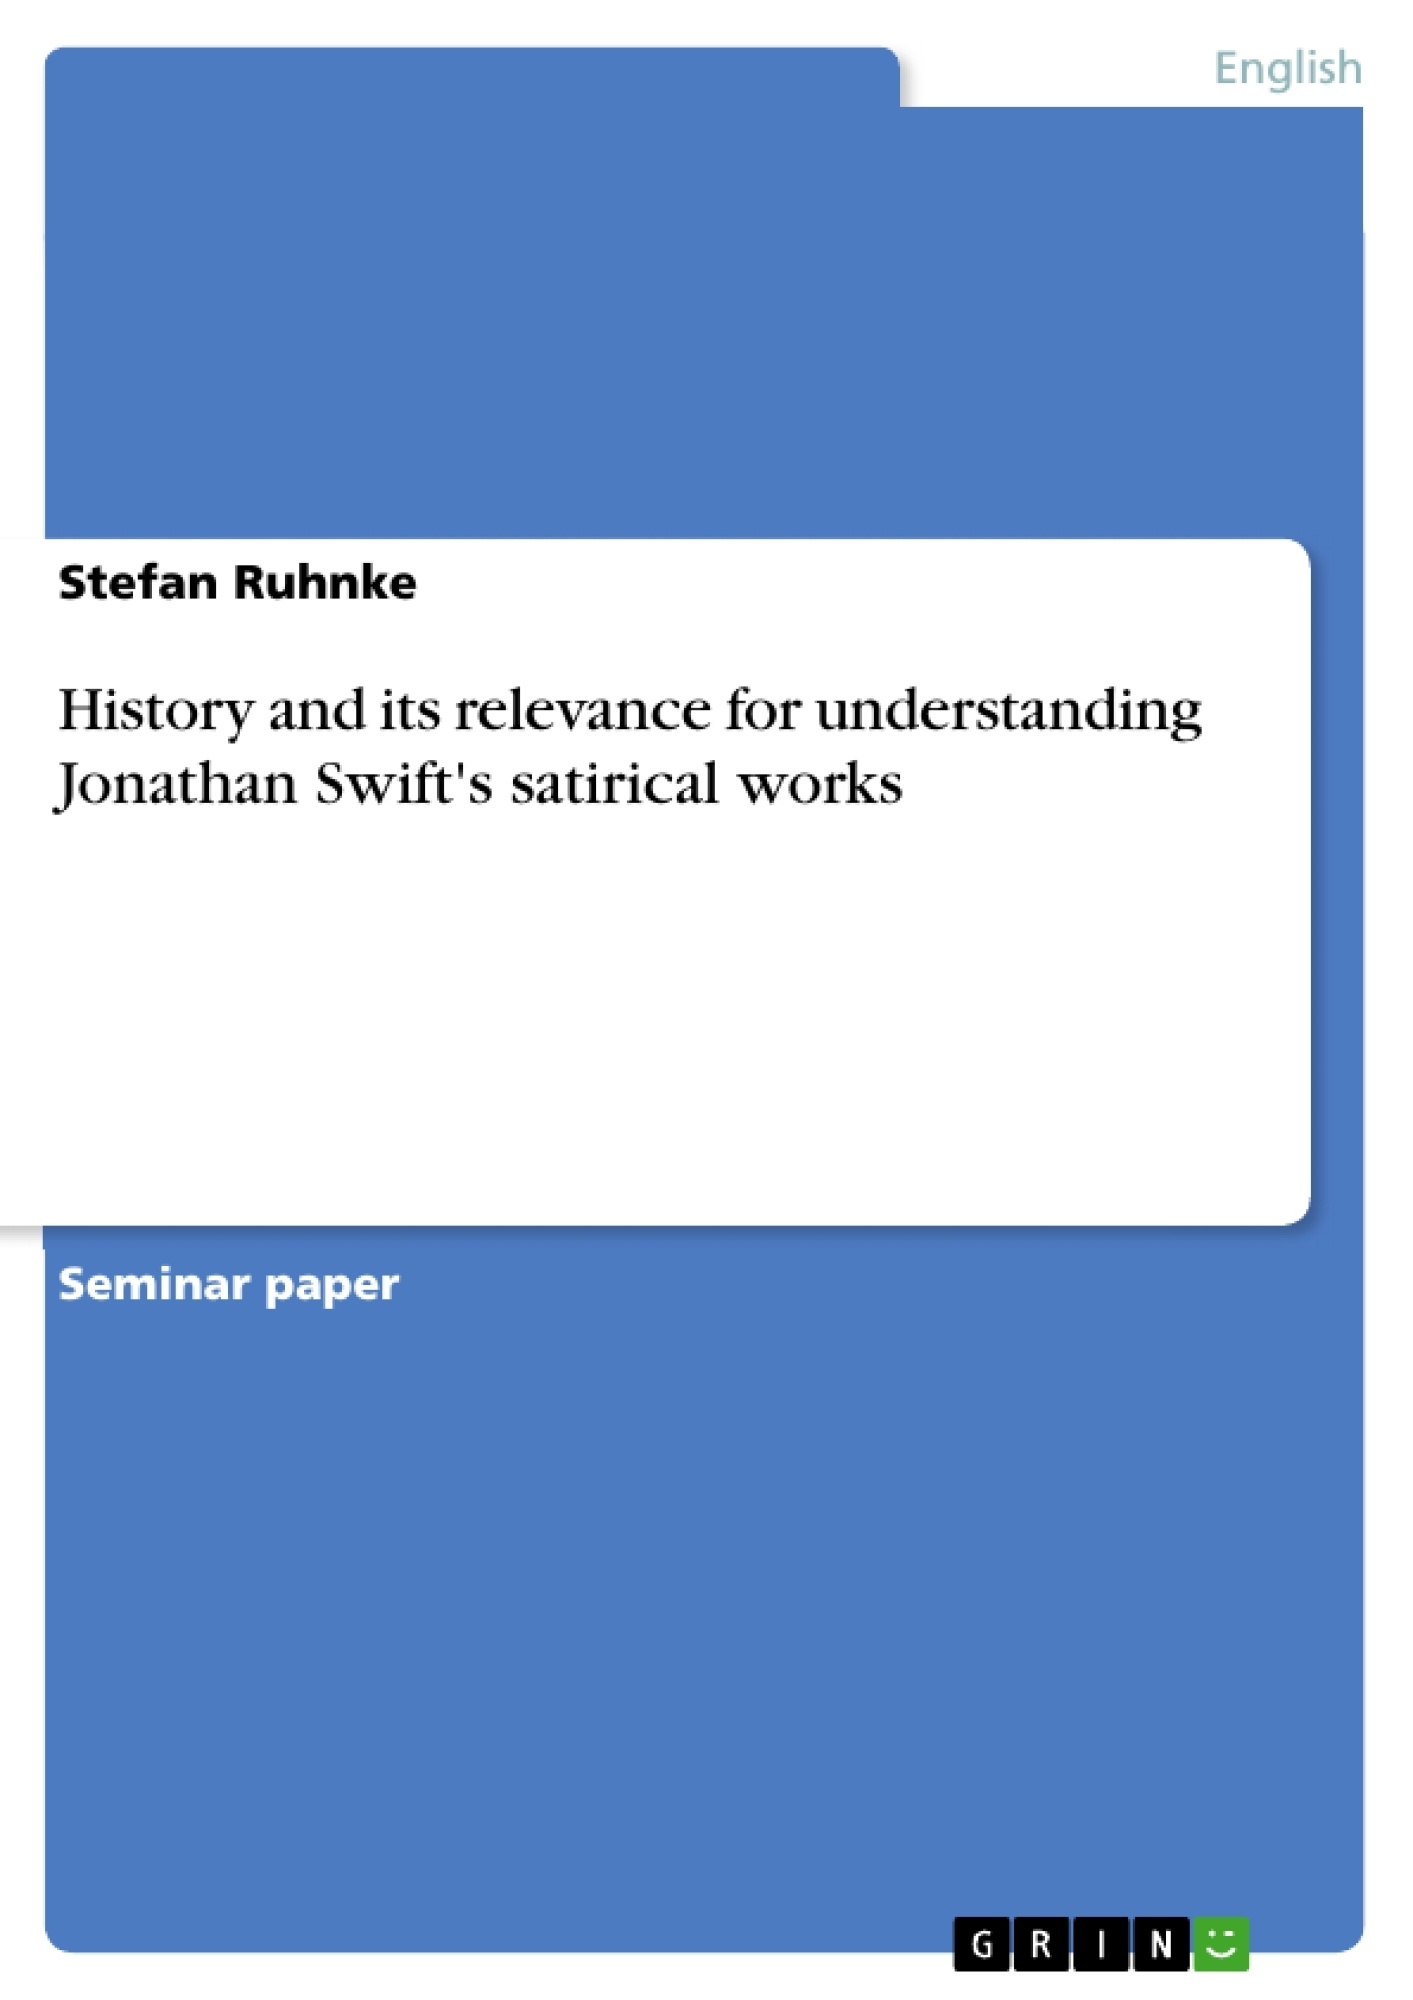 Title: History and its relevance for understanding Jonathan Swift's satirical works